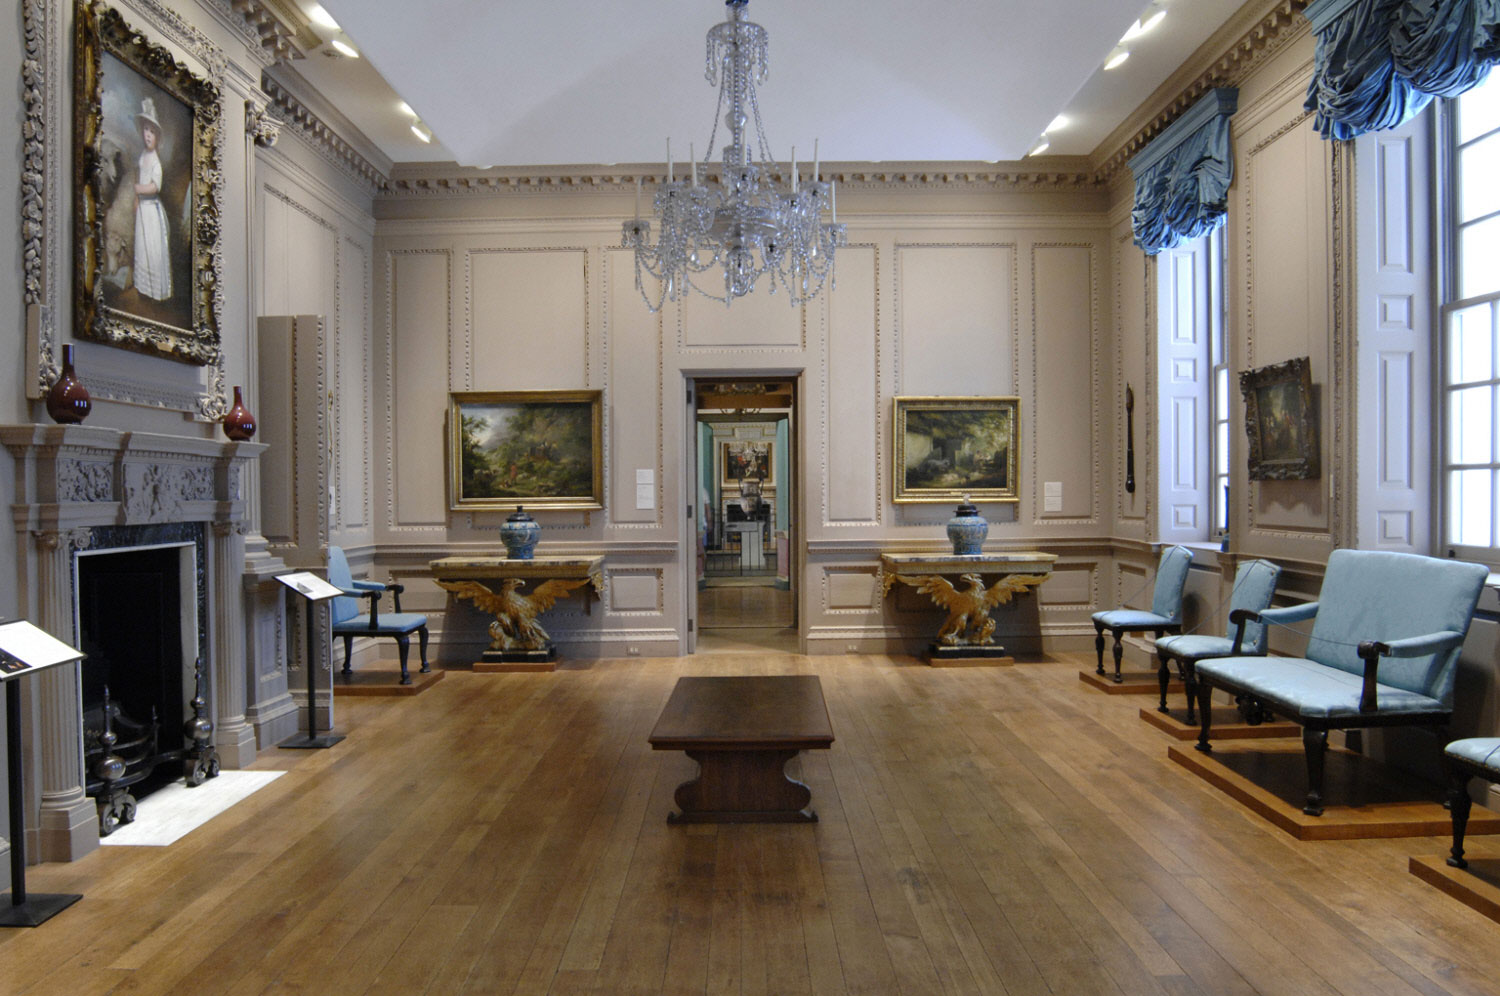 Interior Architecture, possibly from Sutton Scarsdale Hall